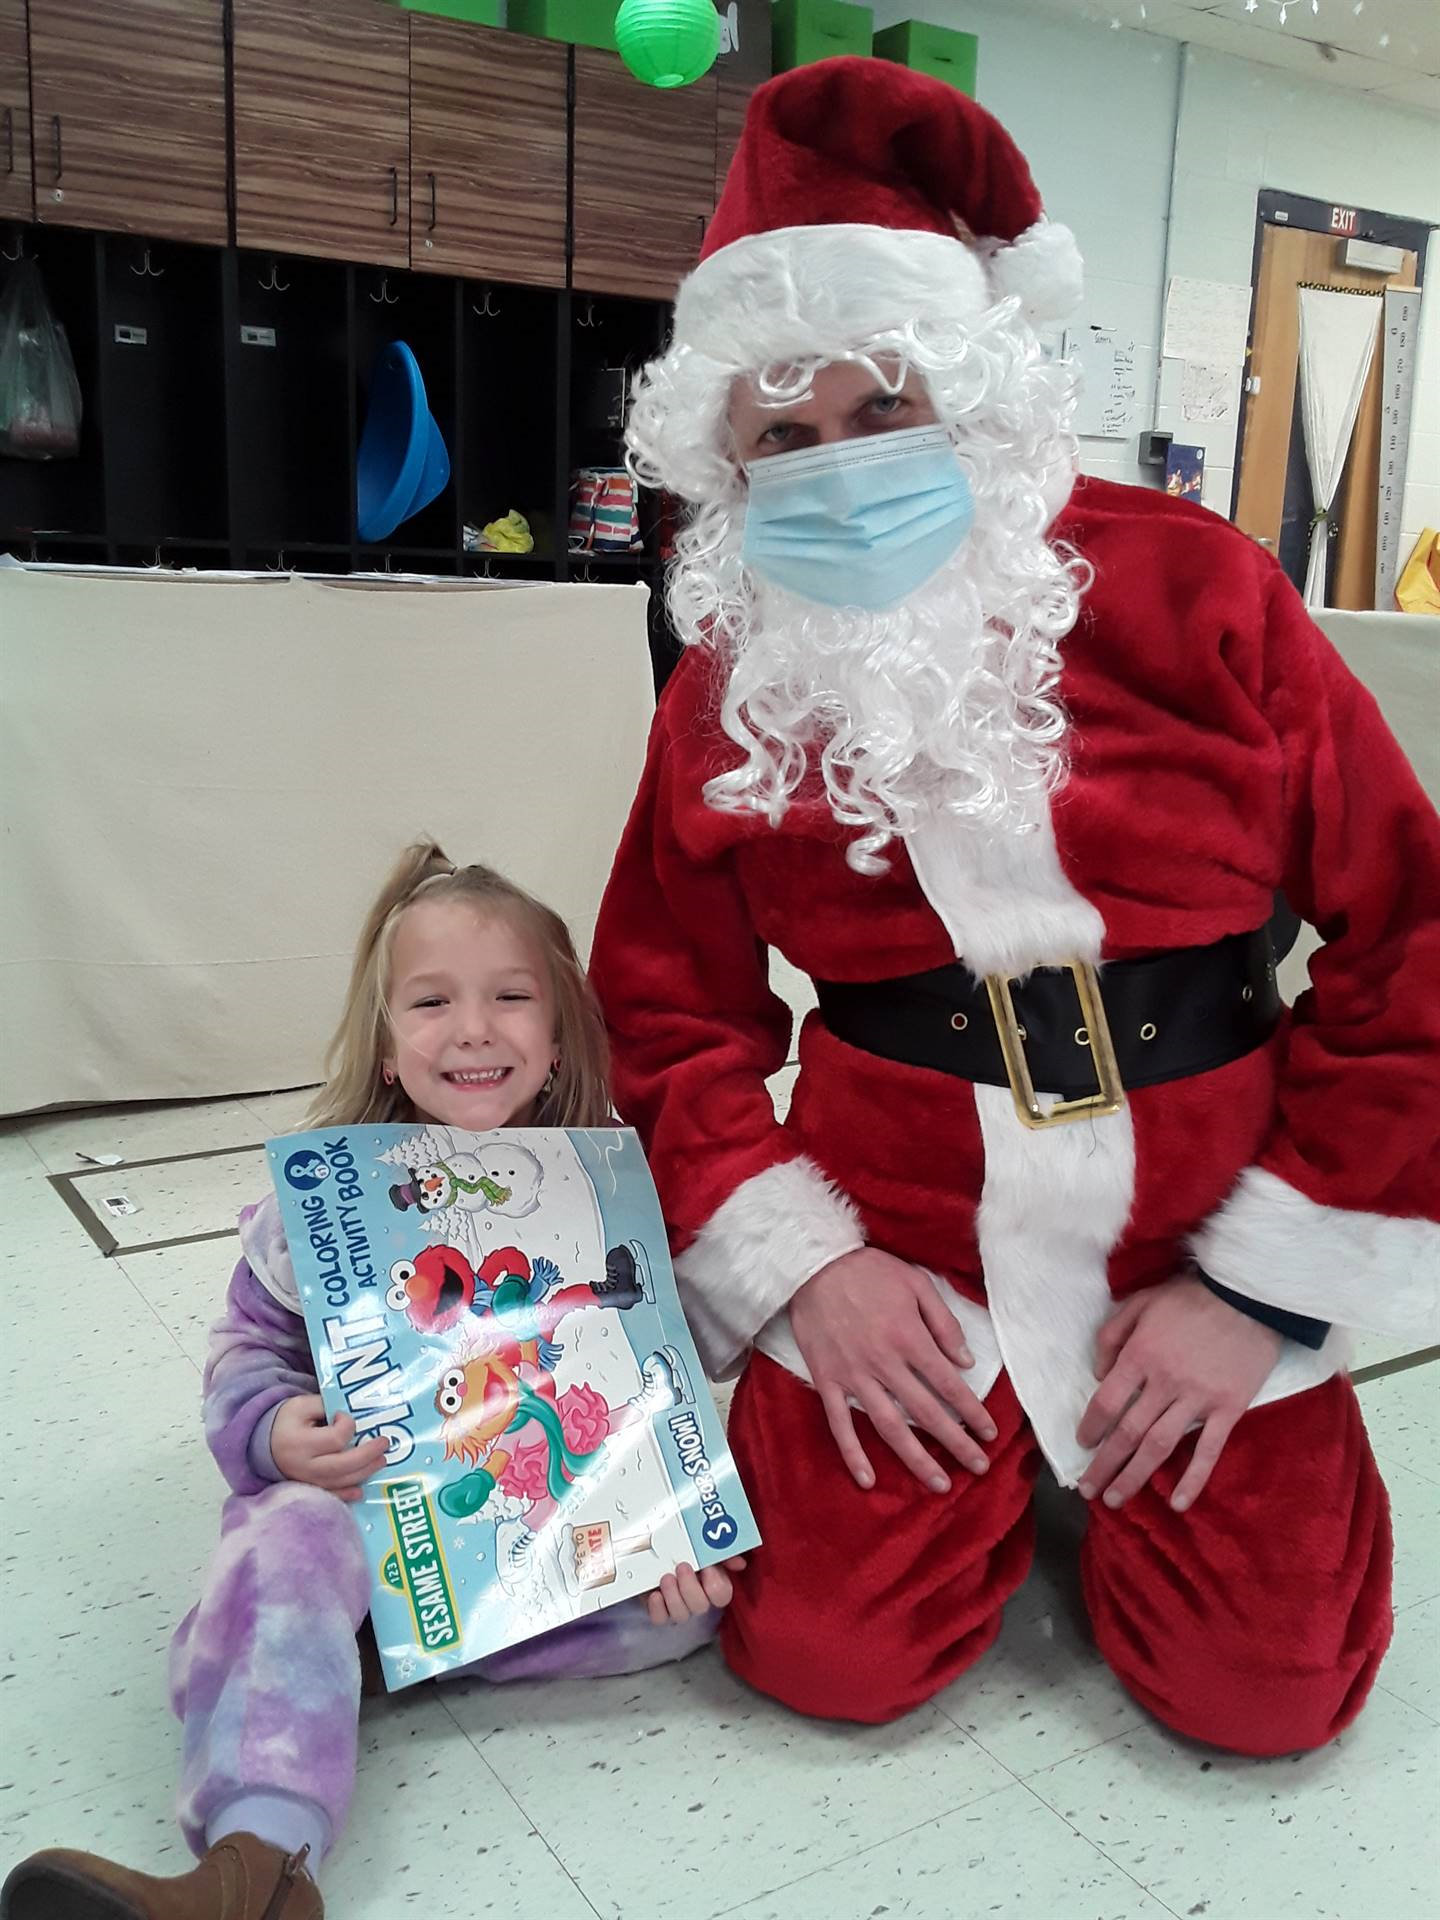 Santa Claus with a student holding a coloring book